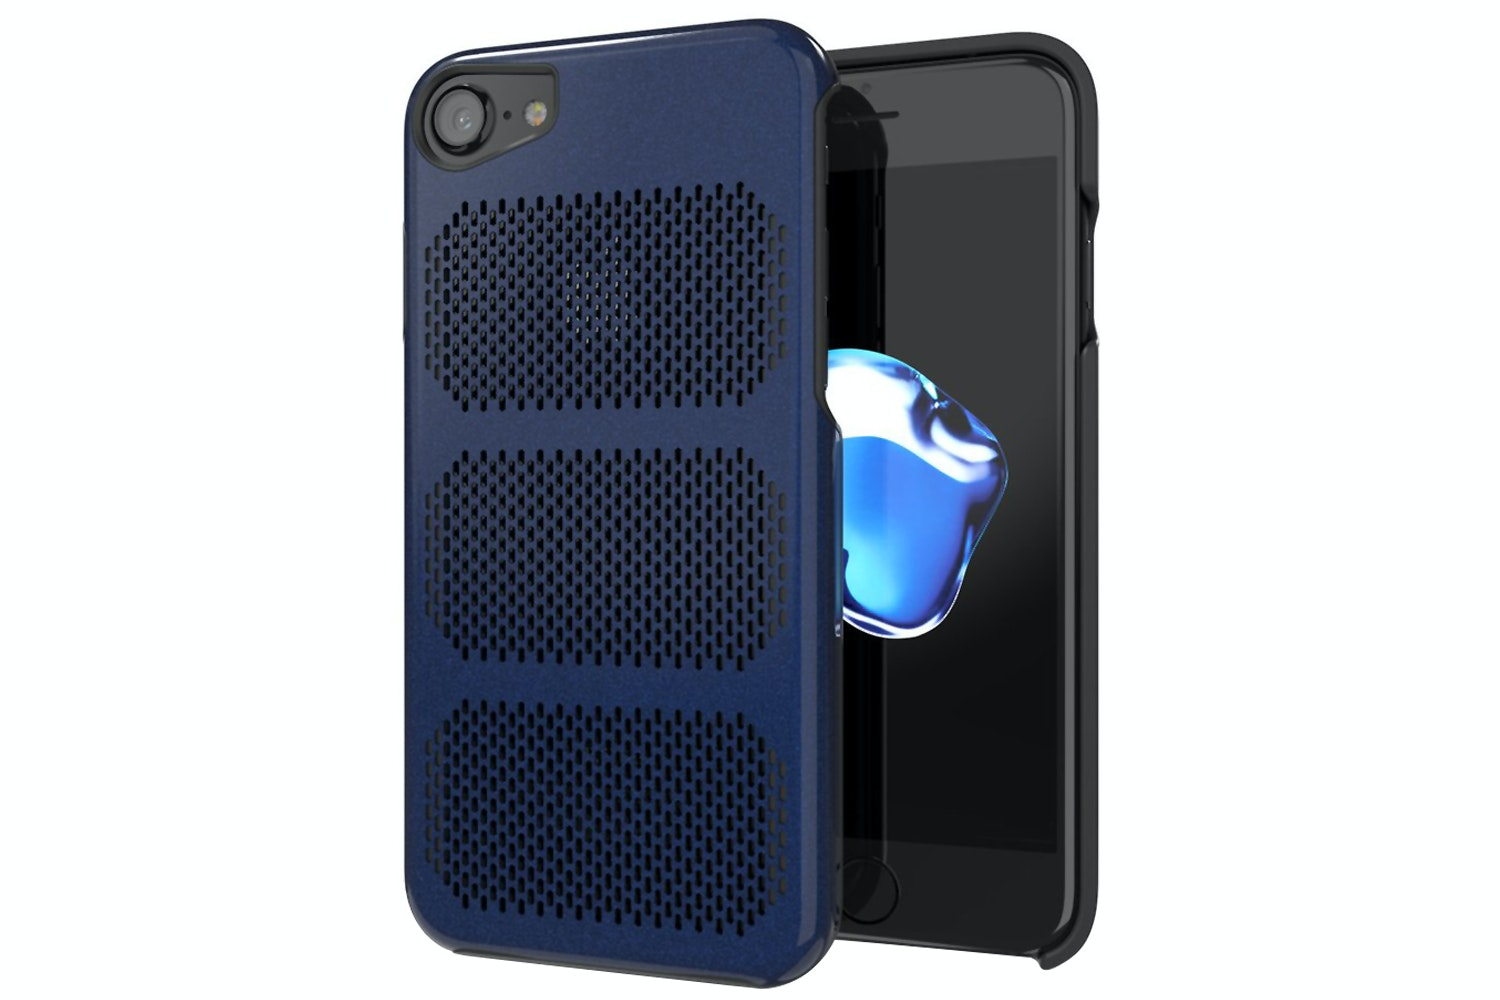 IOM Extreme GT iPhone 7 Plus Case | Intense Blue & Black